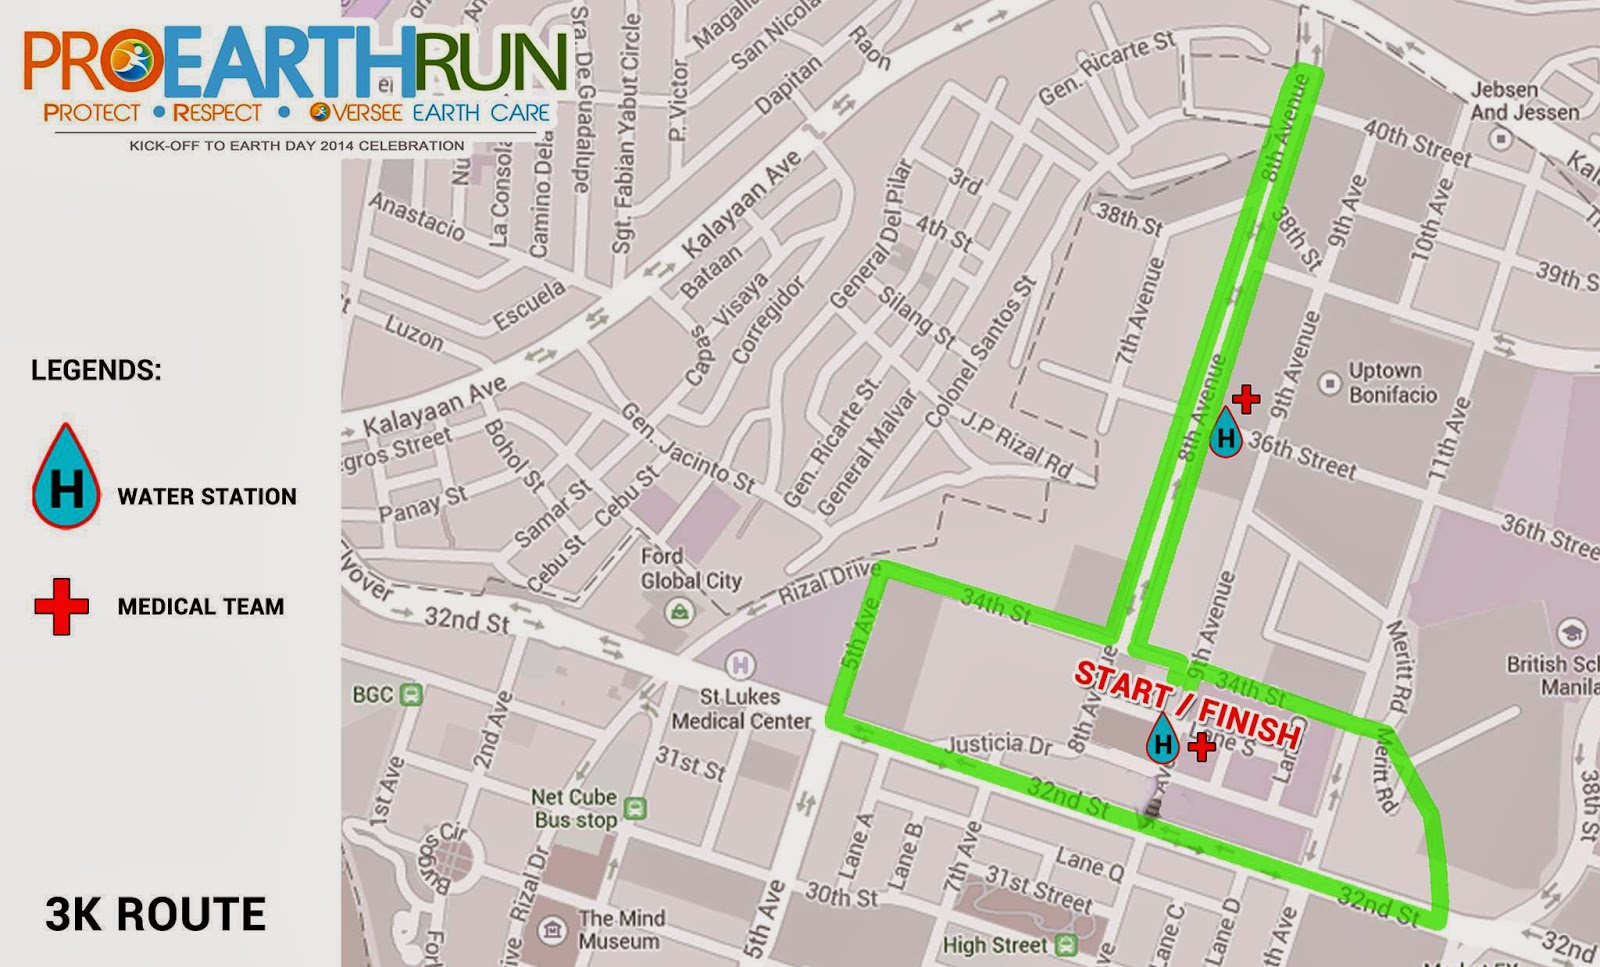 Map of 3k Route for Pro Earth Run 2014